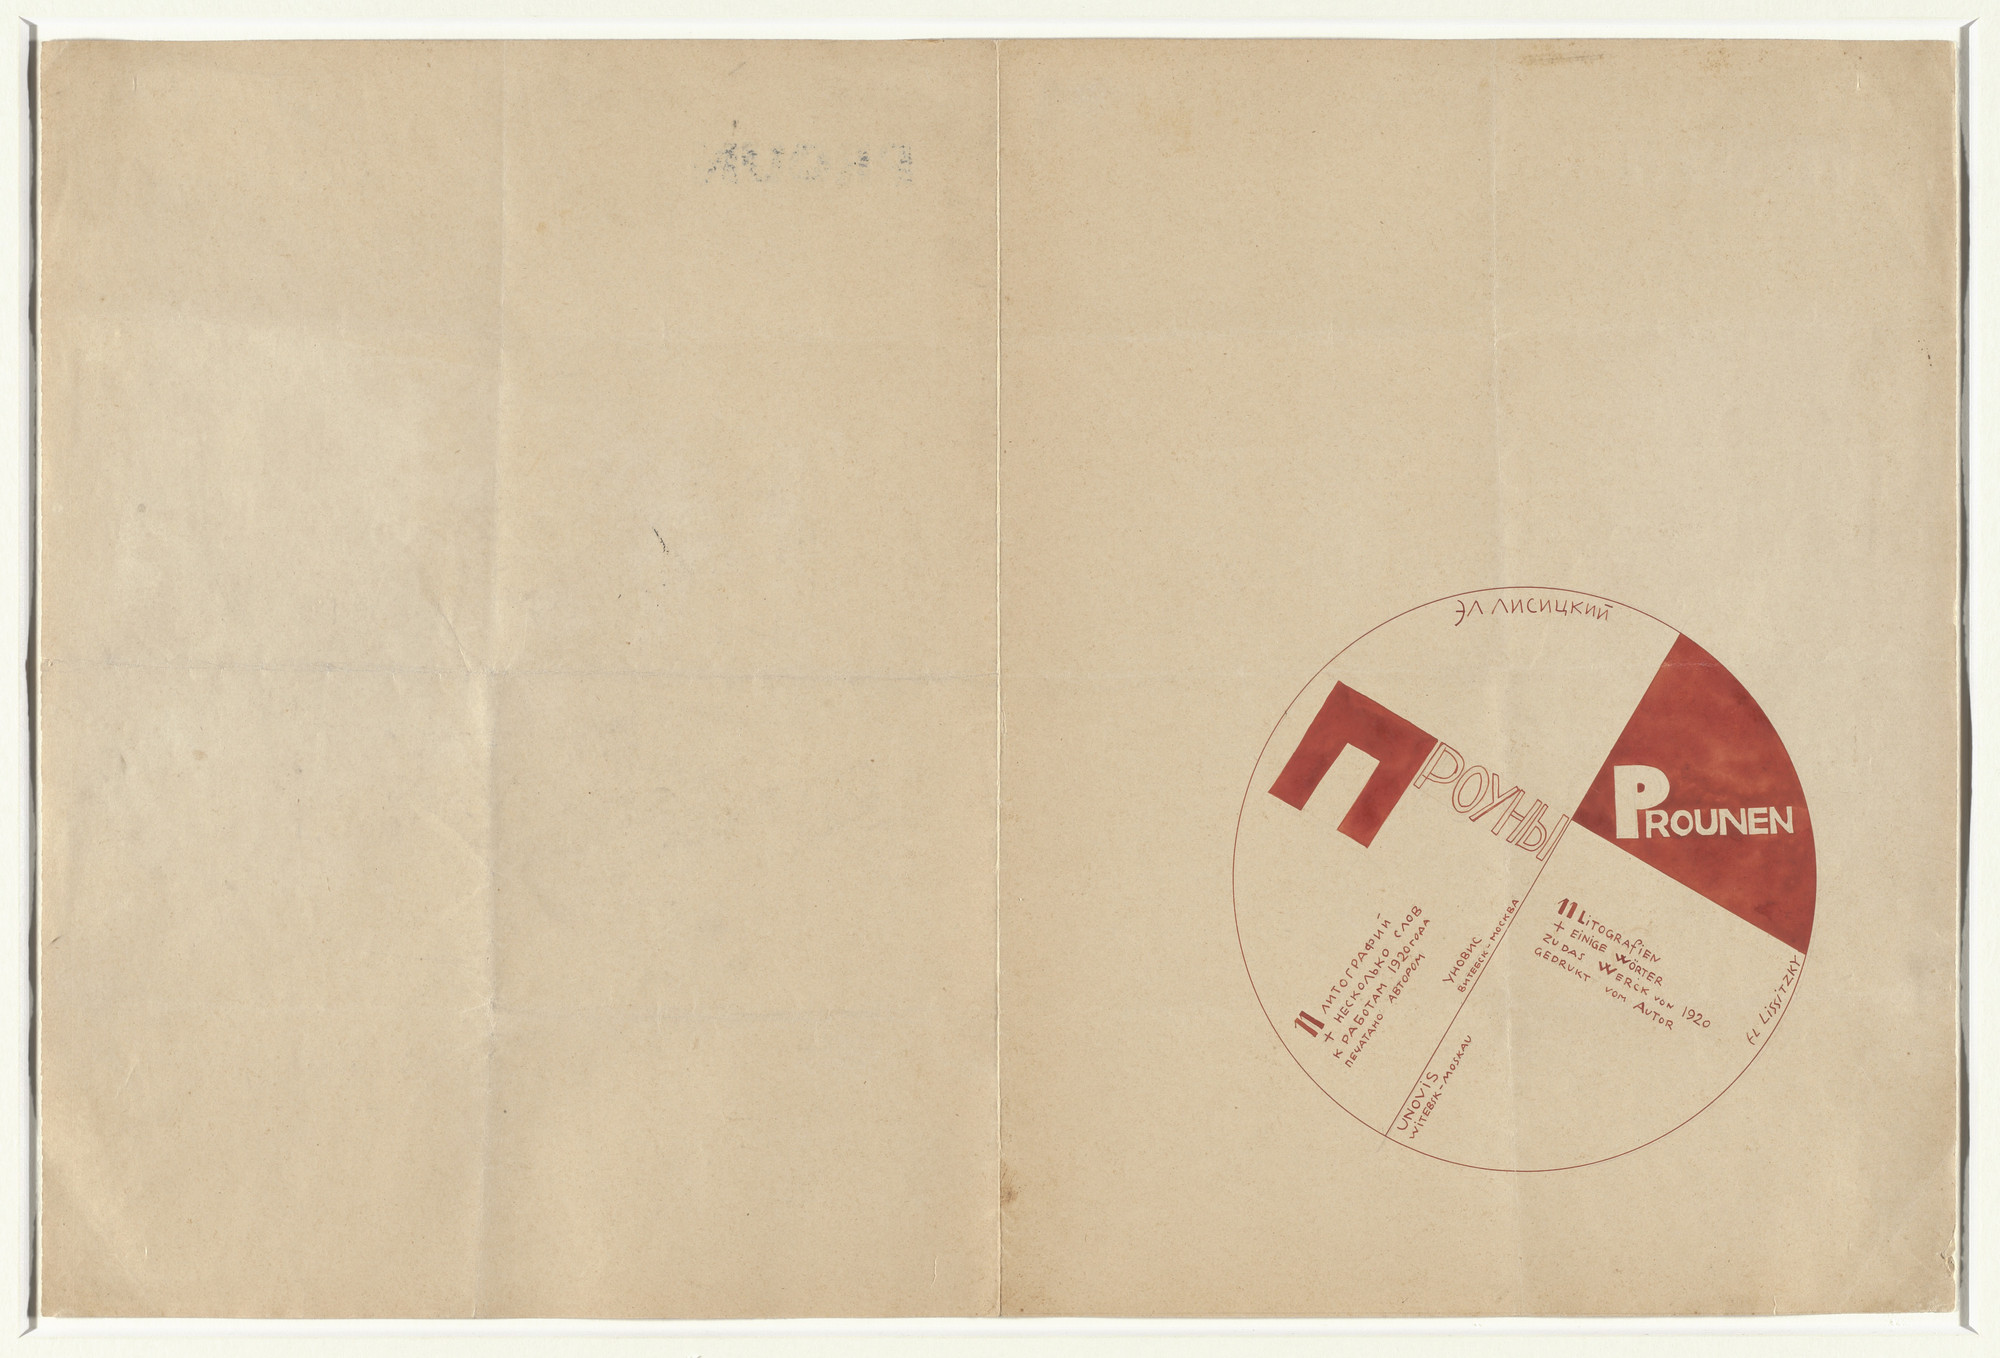 El Lissitzky. Manifesto and colophon from Proun. 1920